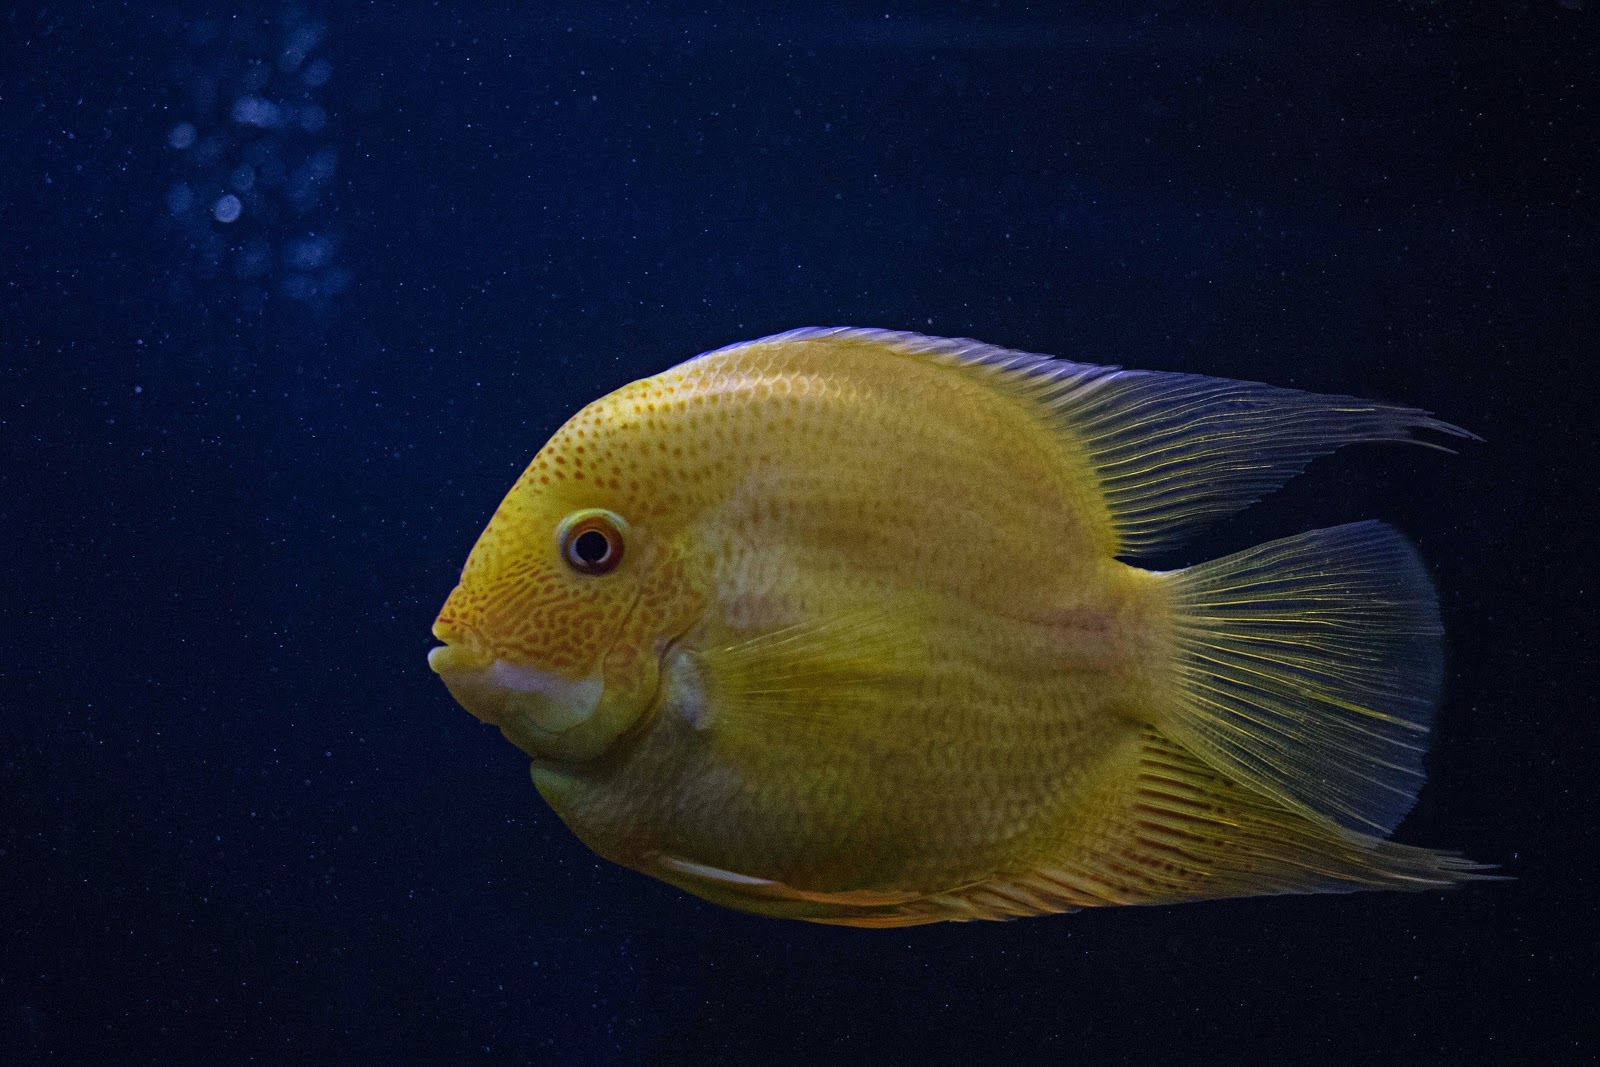 yellow-fish-in-close-up-photography-images